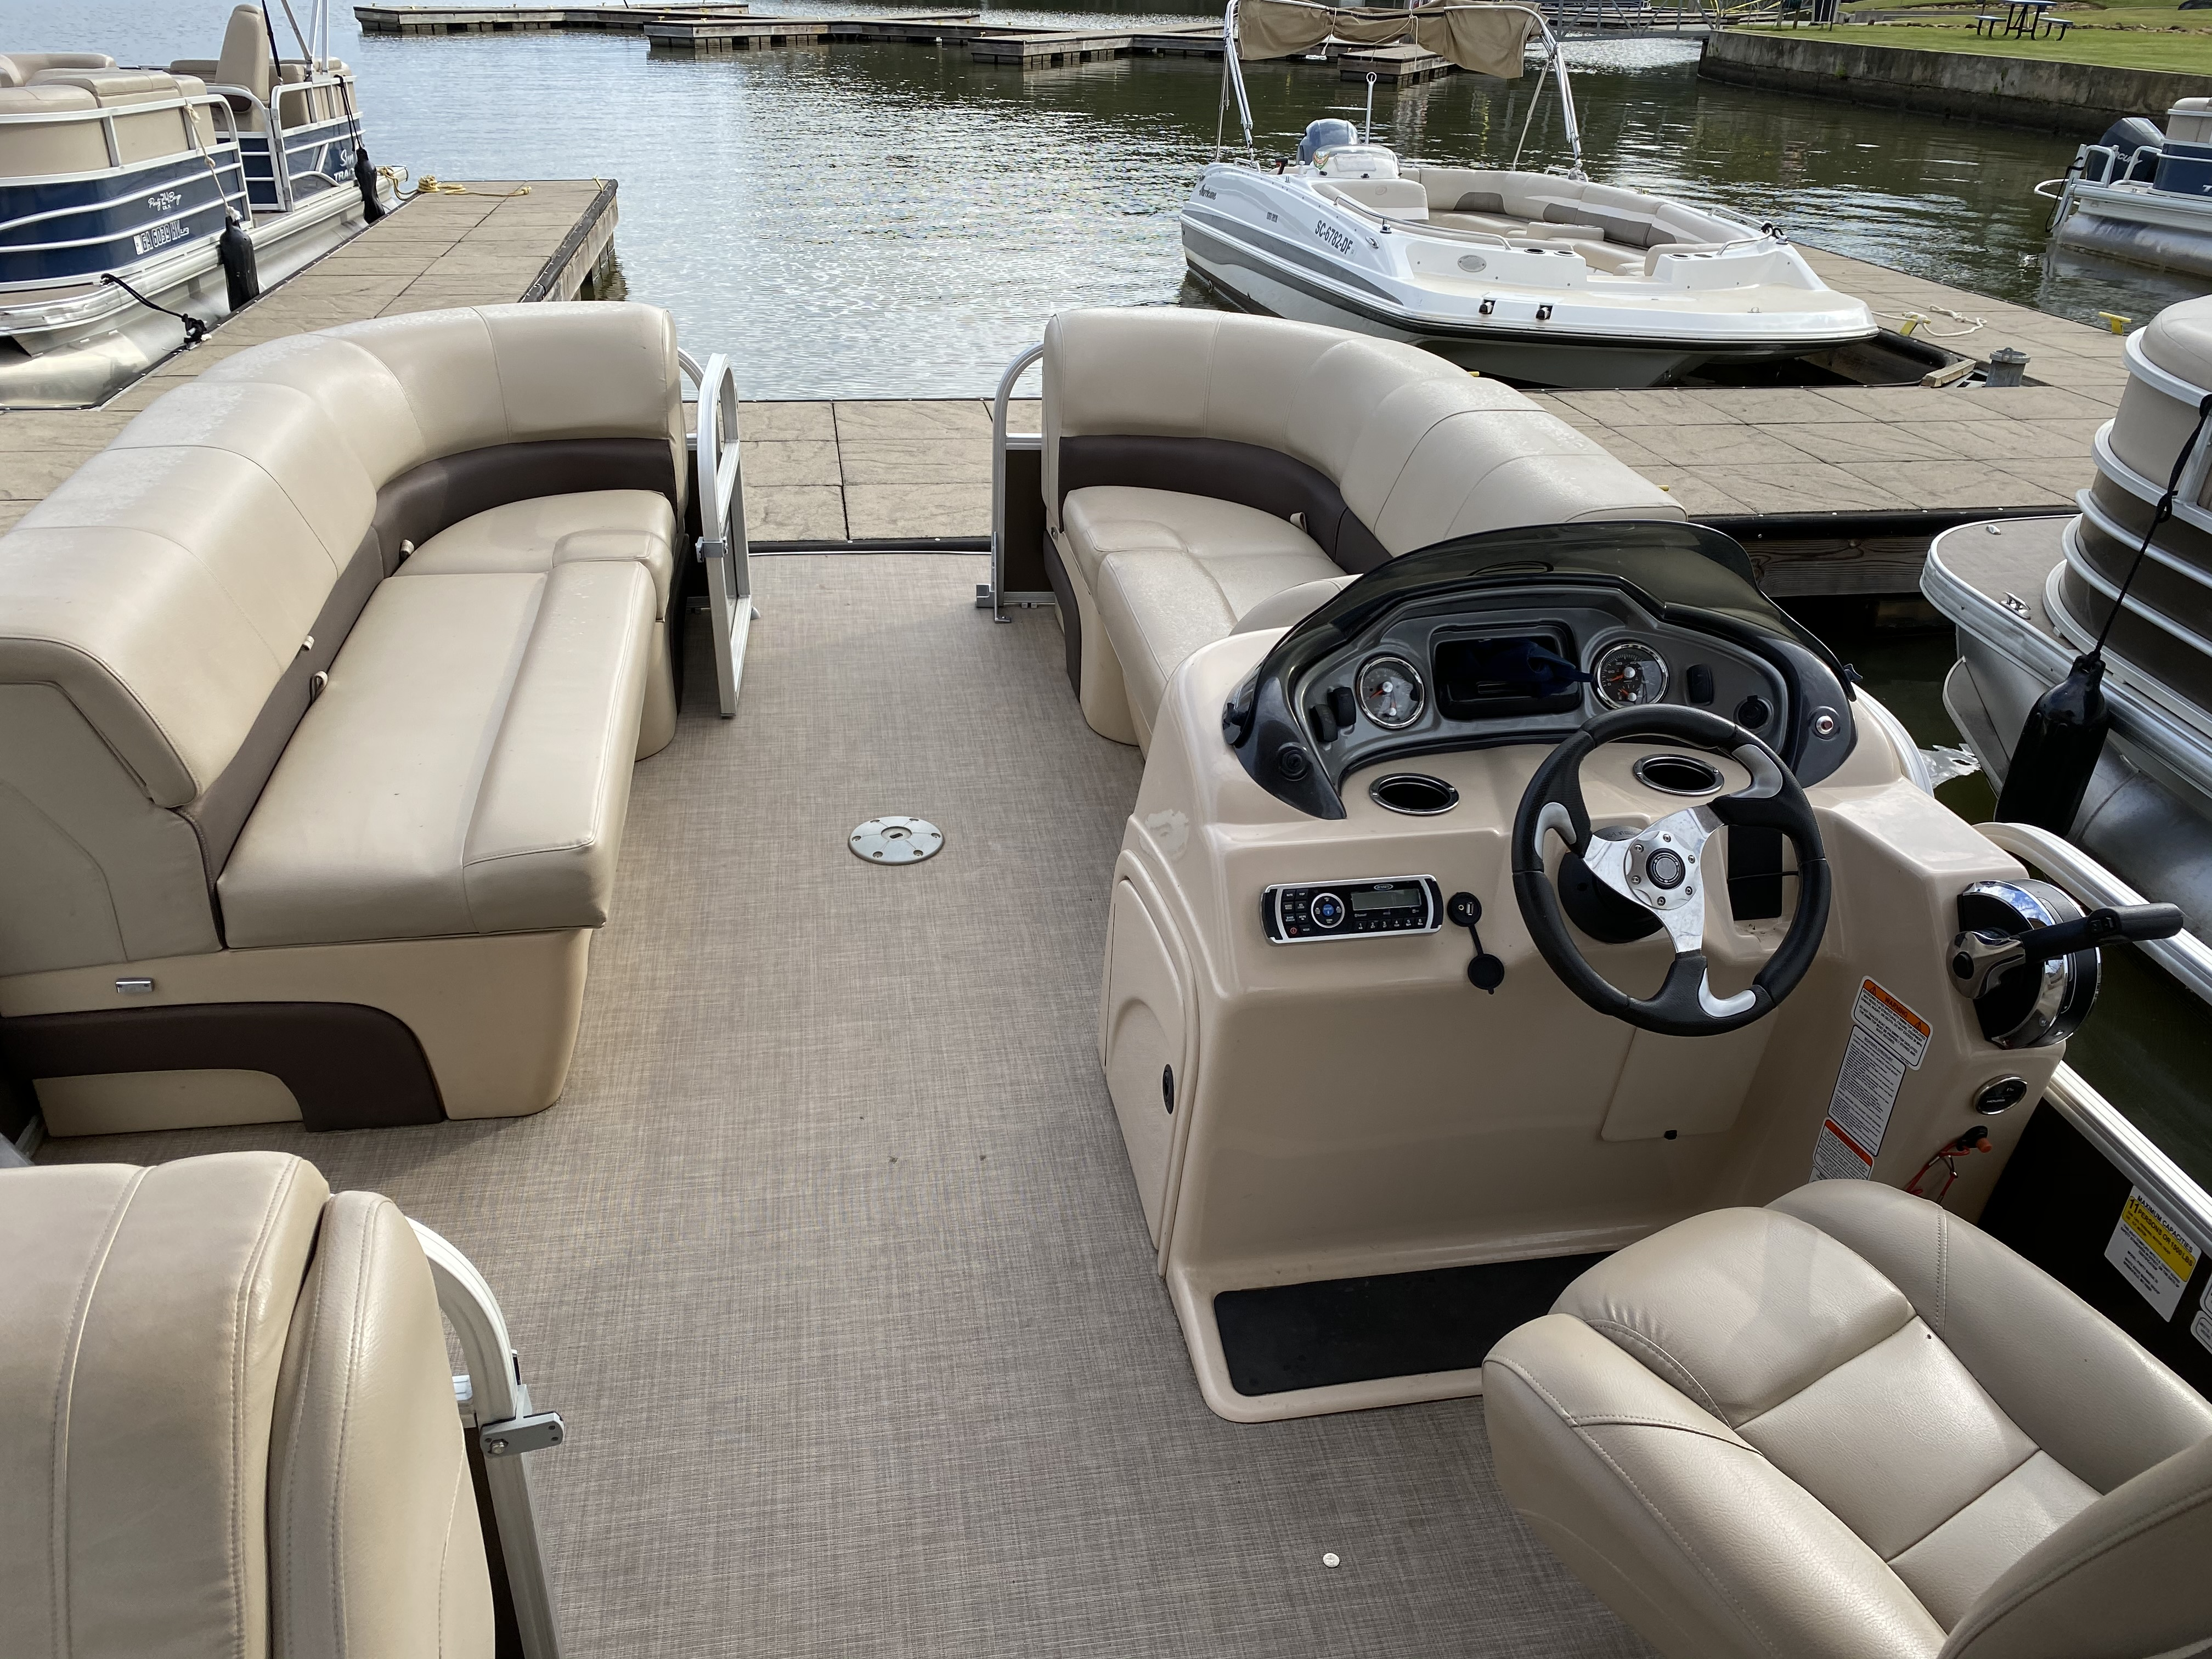 2019 Sun Tracker boat for sale, model of the boat is PARTY BARGE 22 w/ Mercury 115 ELPT 4S & Image # 26 of 26